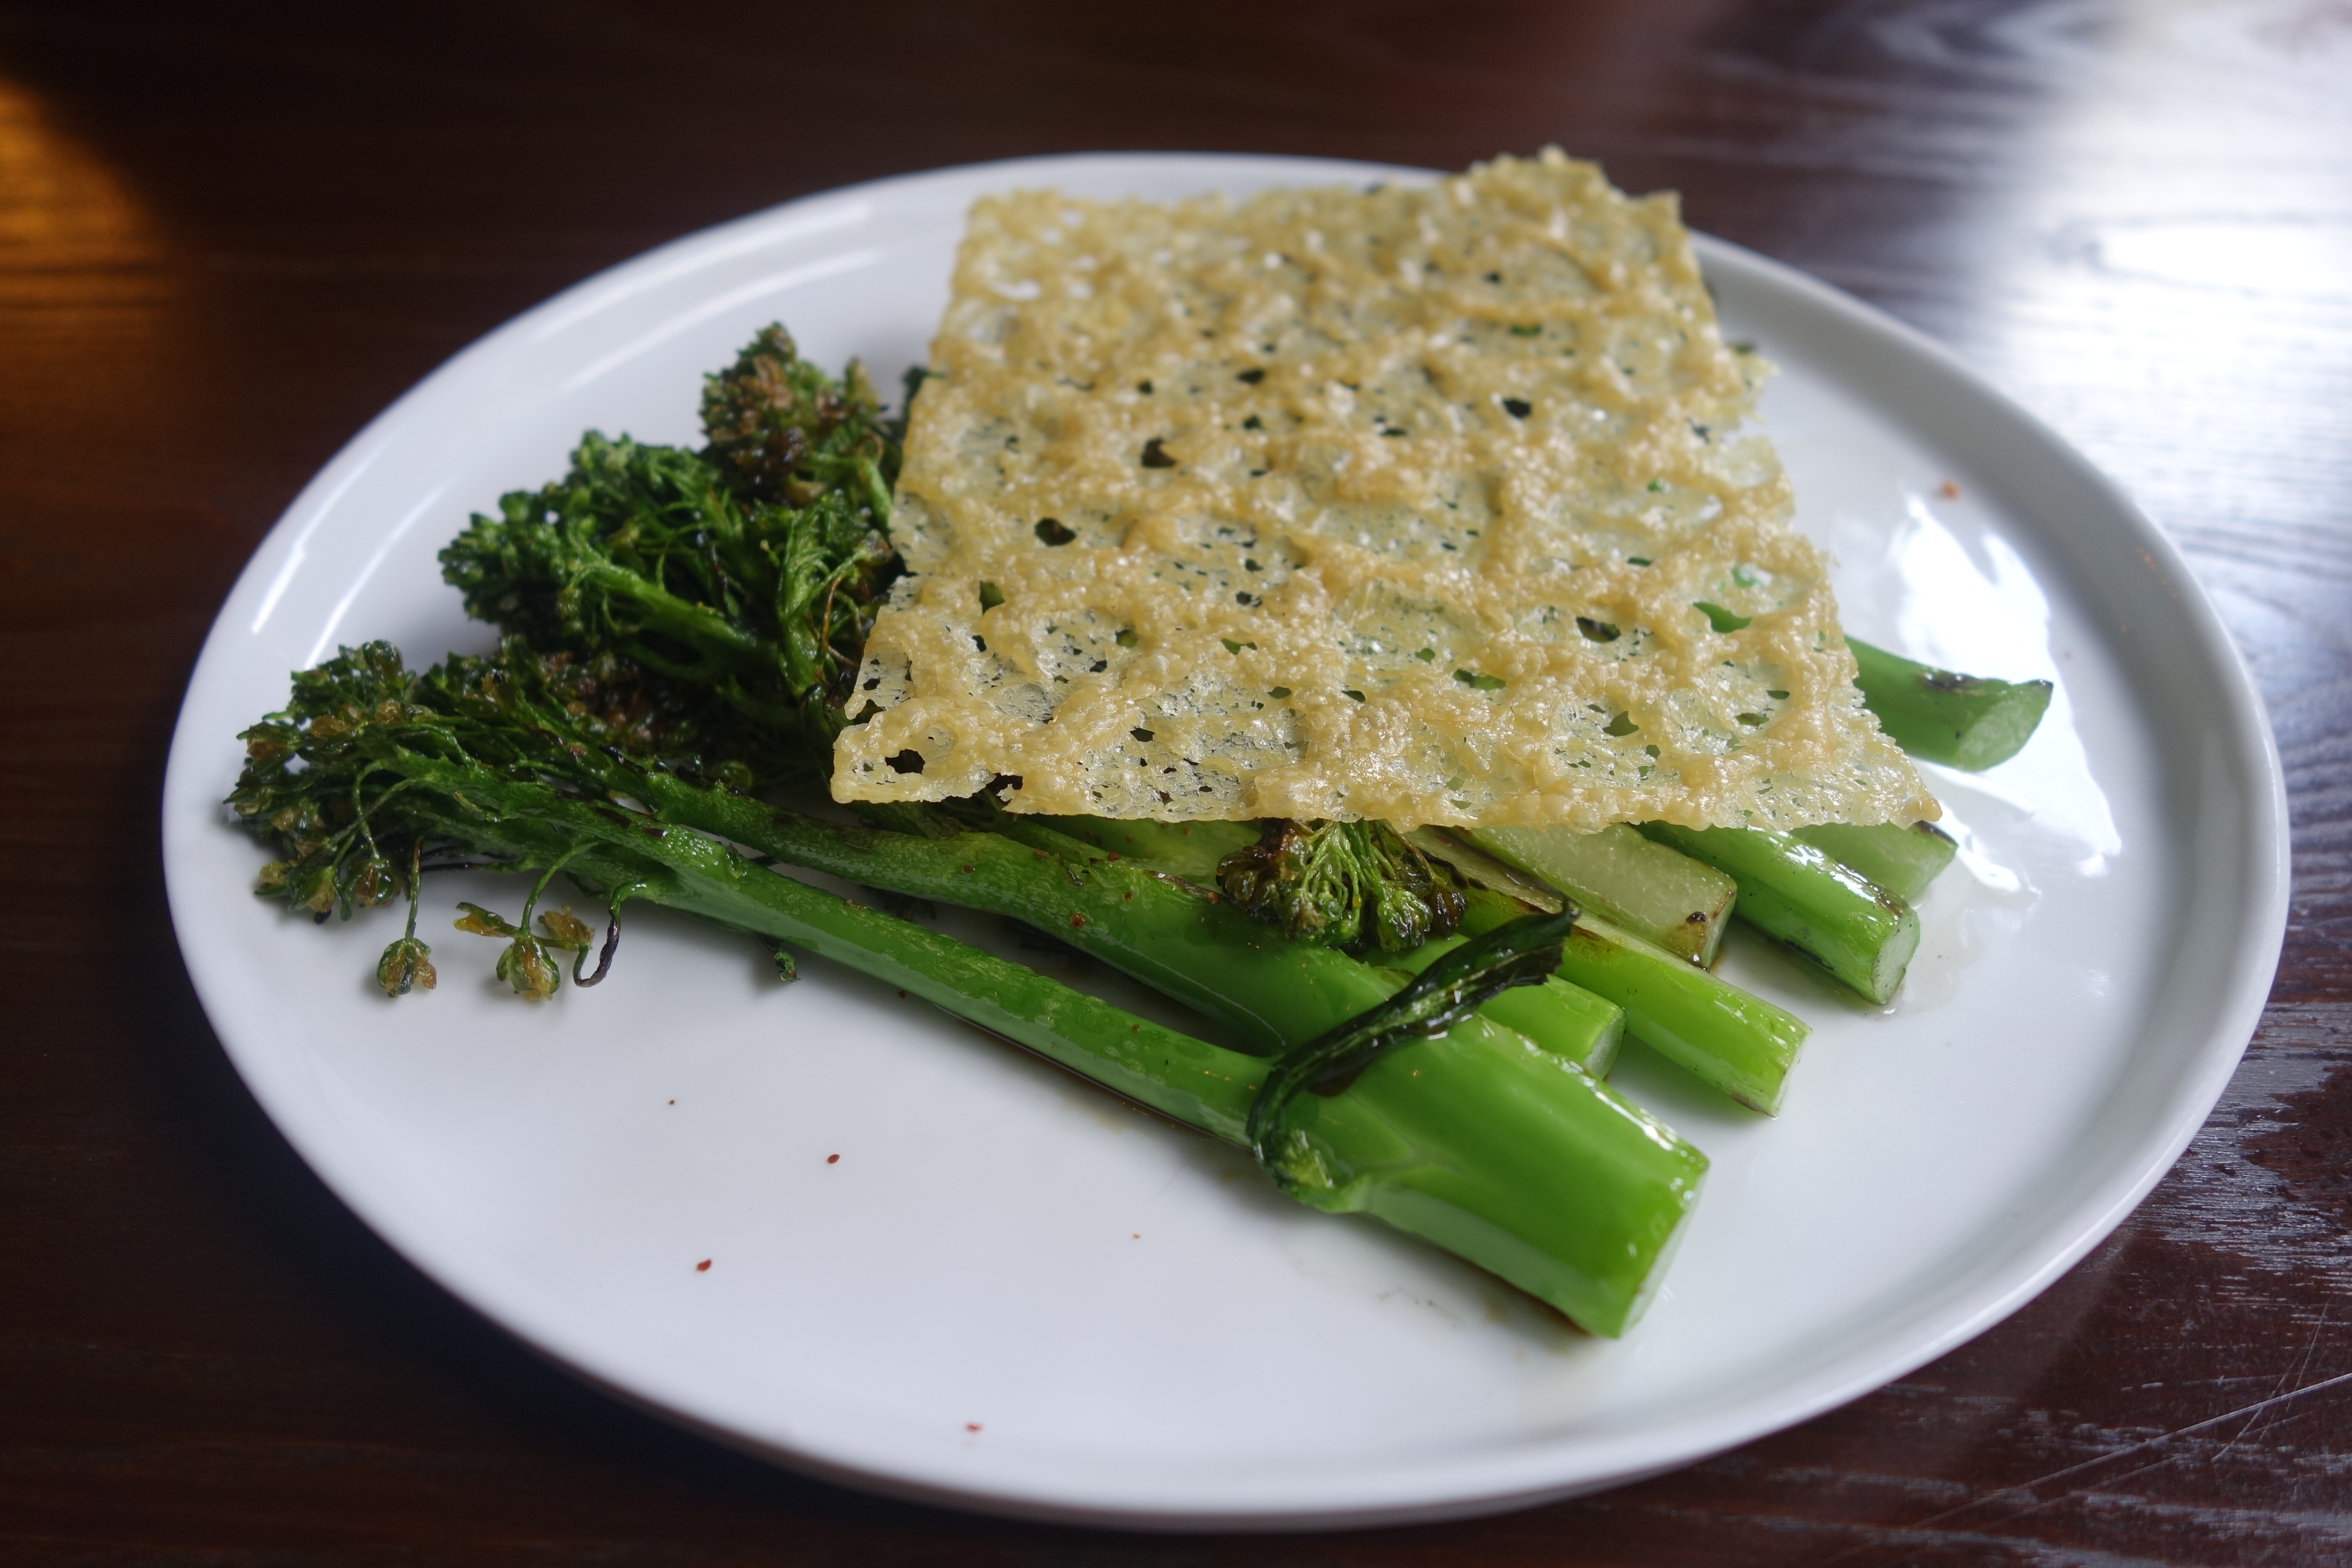 sakamai - charred broccolini 2